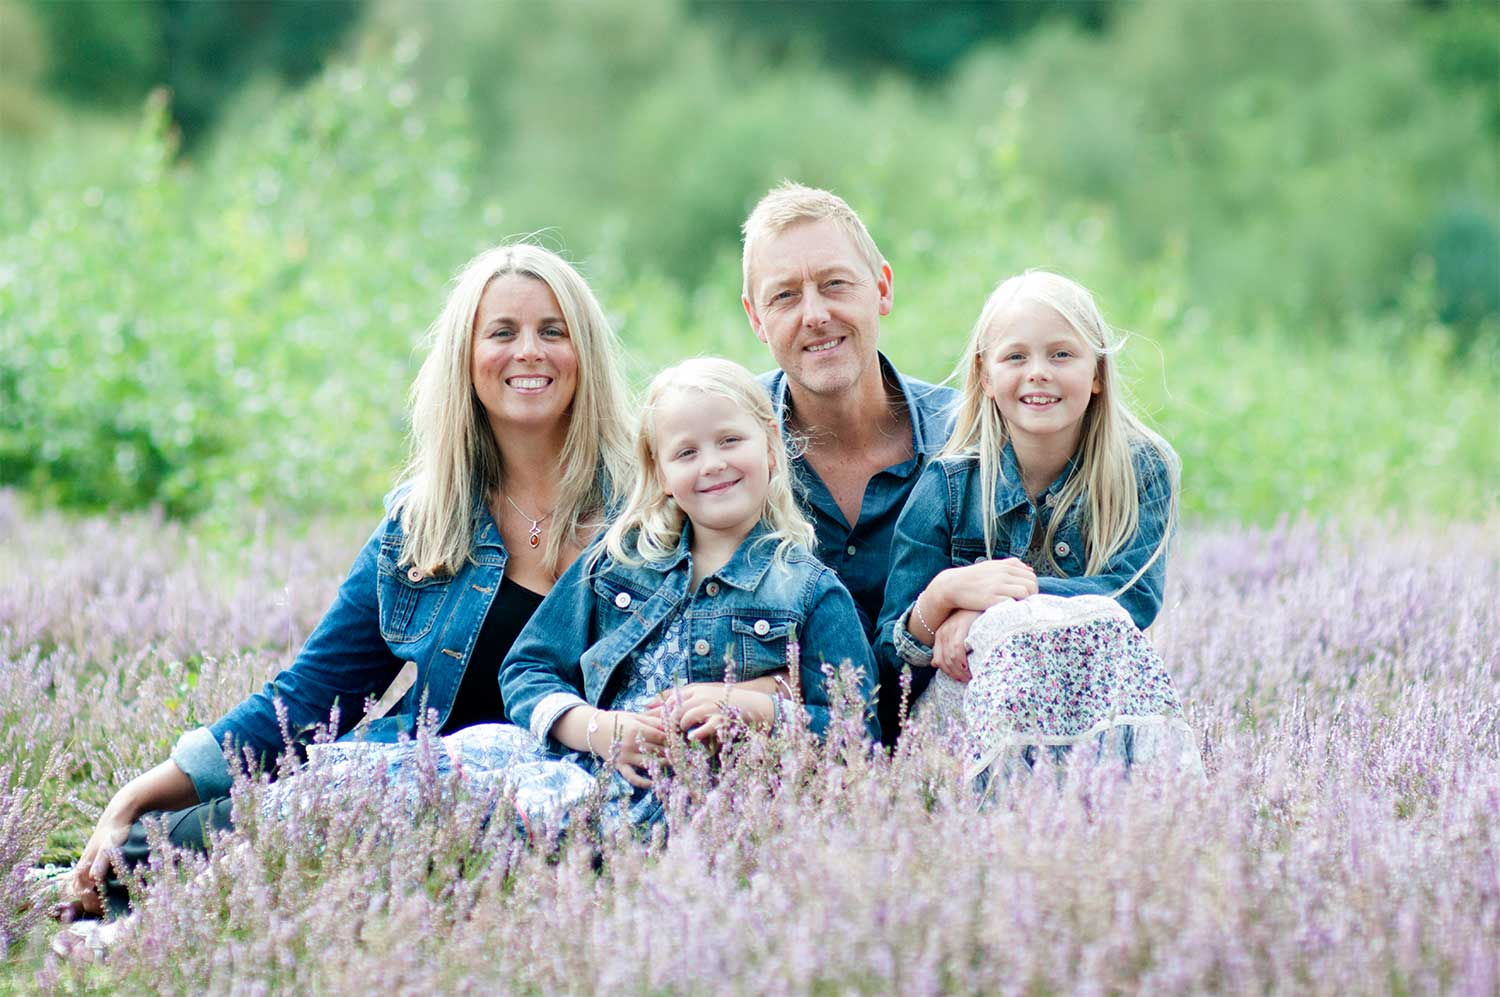 Family Portrait Photographers Sutton Coldfield